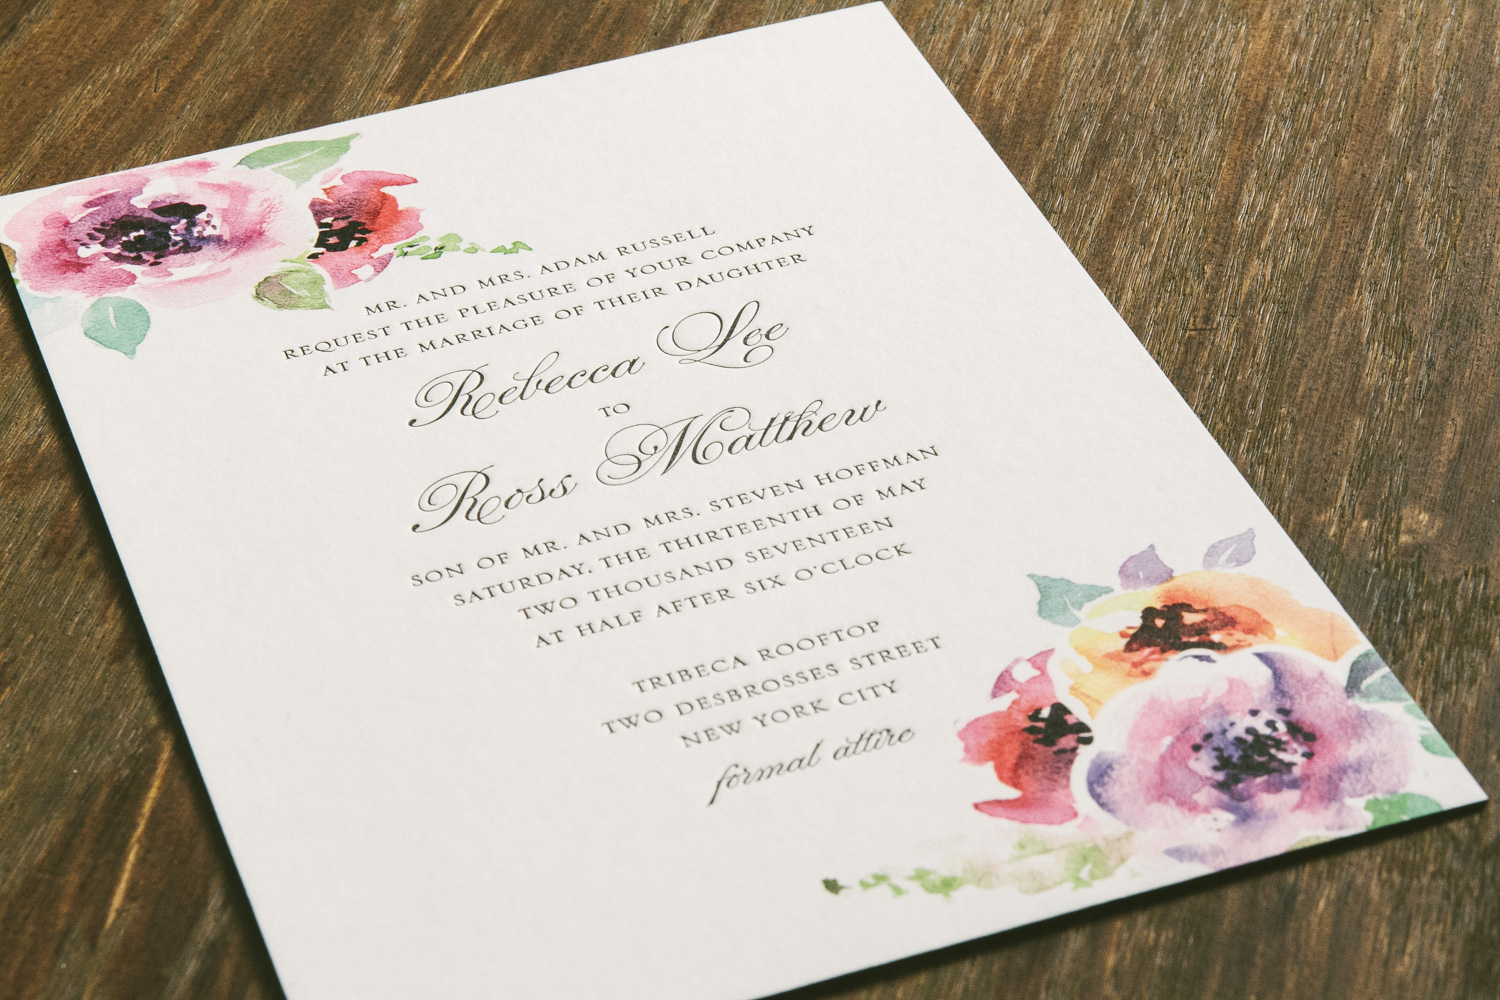 Classic letterpress wedding invitation featuring dreamy watercolor florals from Smock